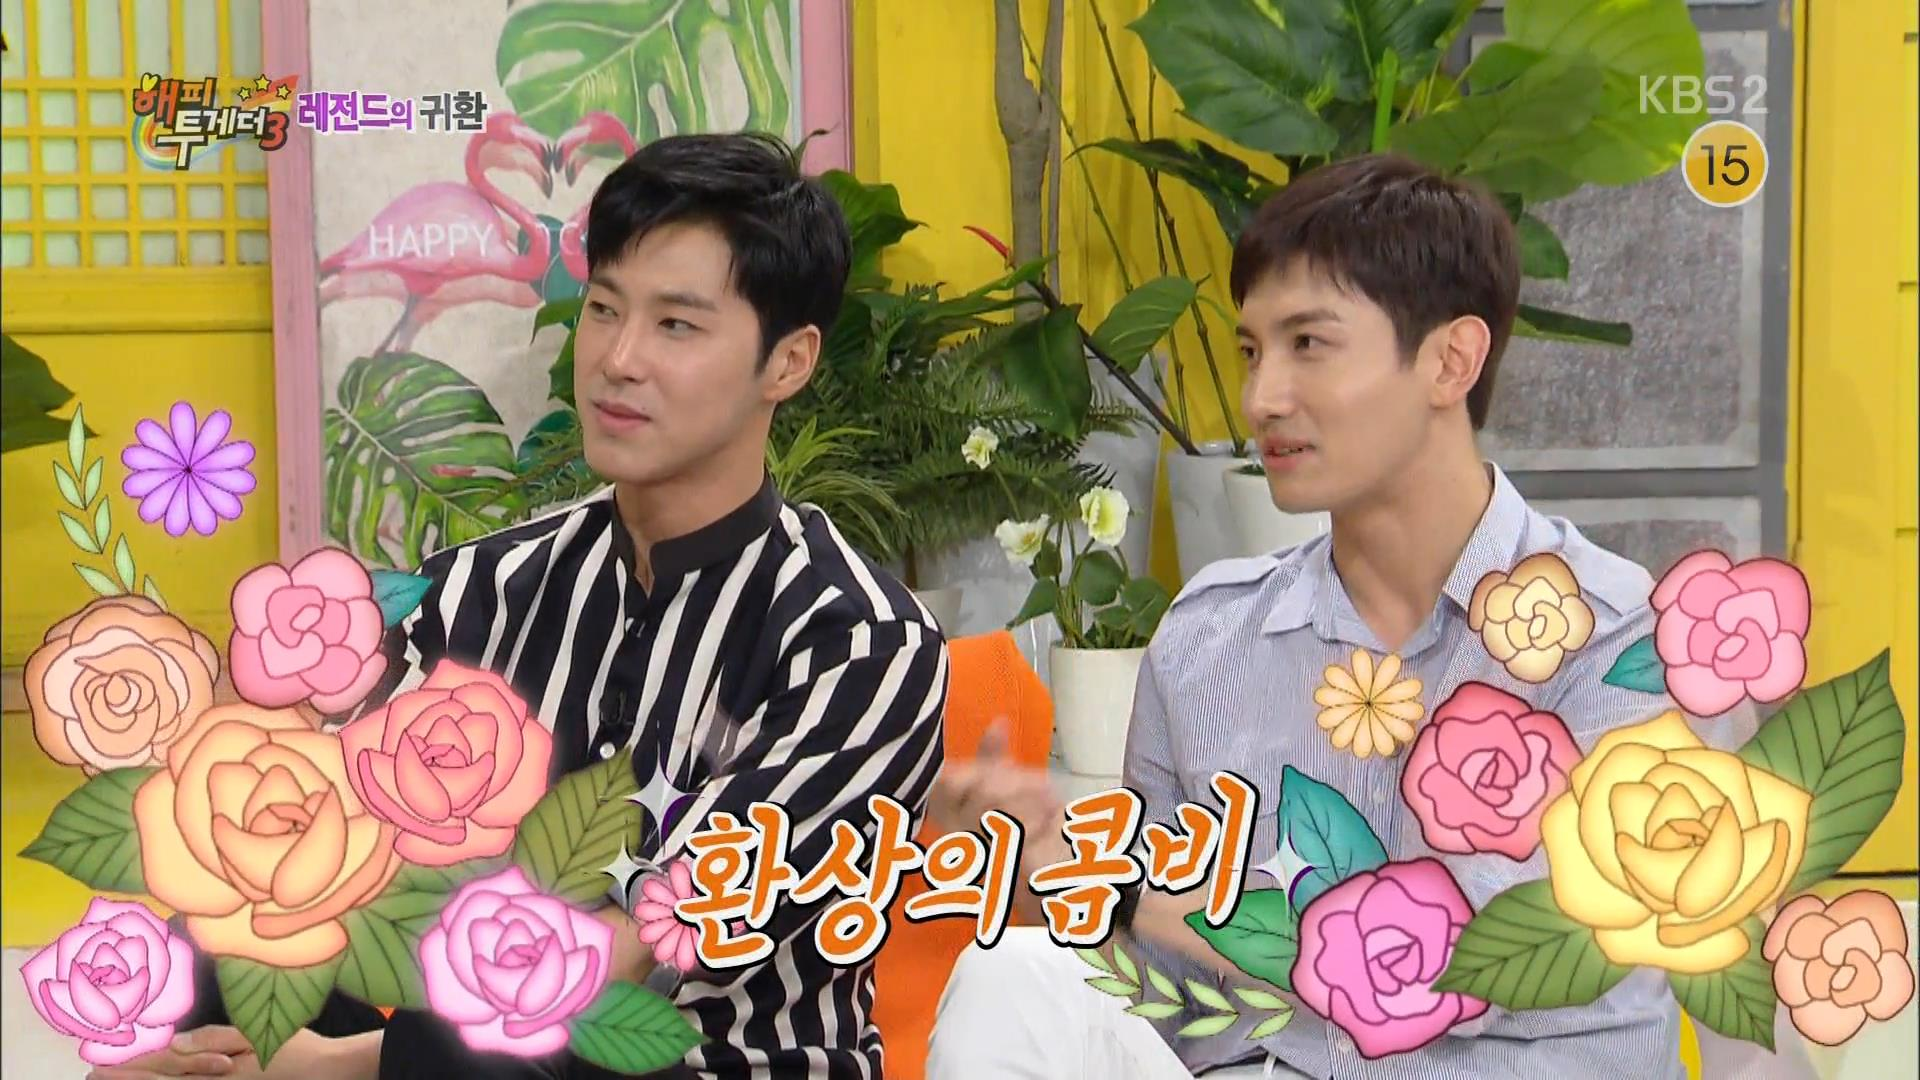 171005_HappyTogether TVXQ_Tdrip-0053656.jpg